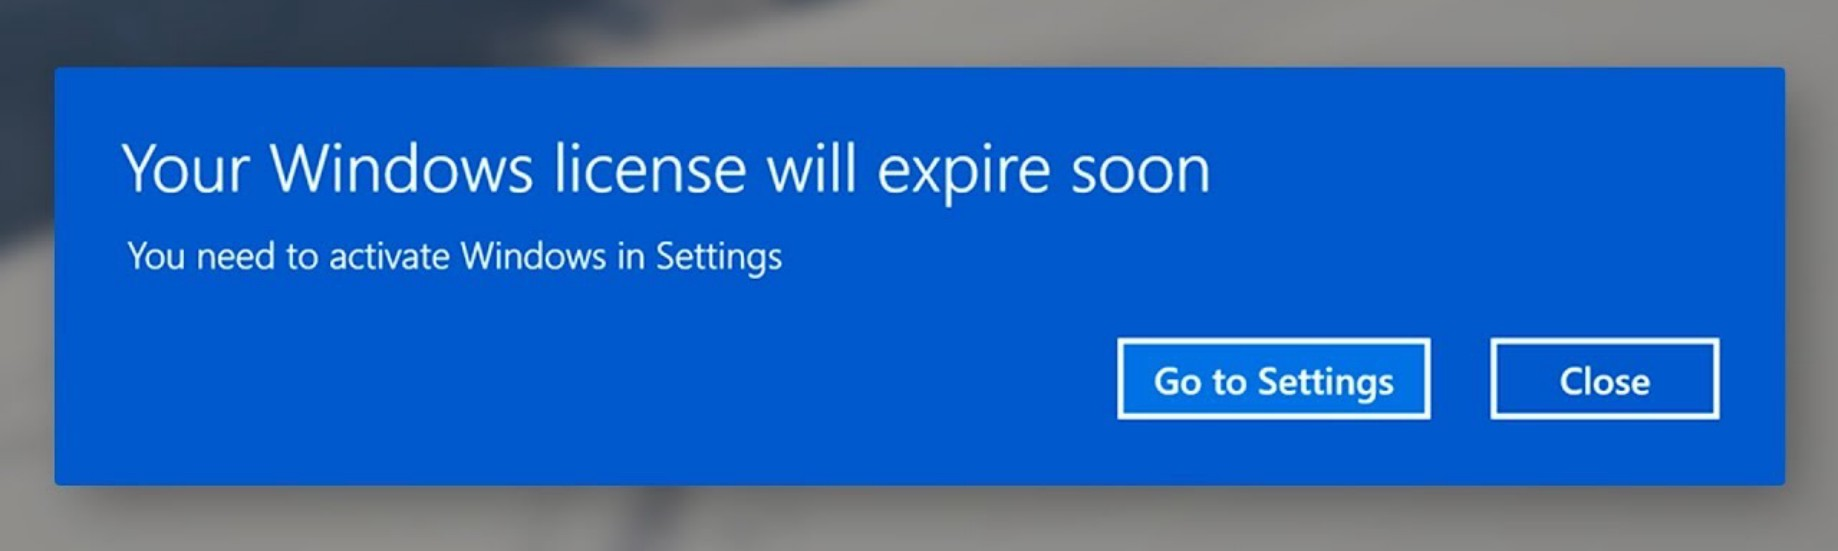 "How to Fix ""Your Windows License will Expire Soon Error"" on Windows 10? 